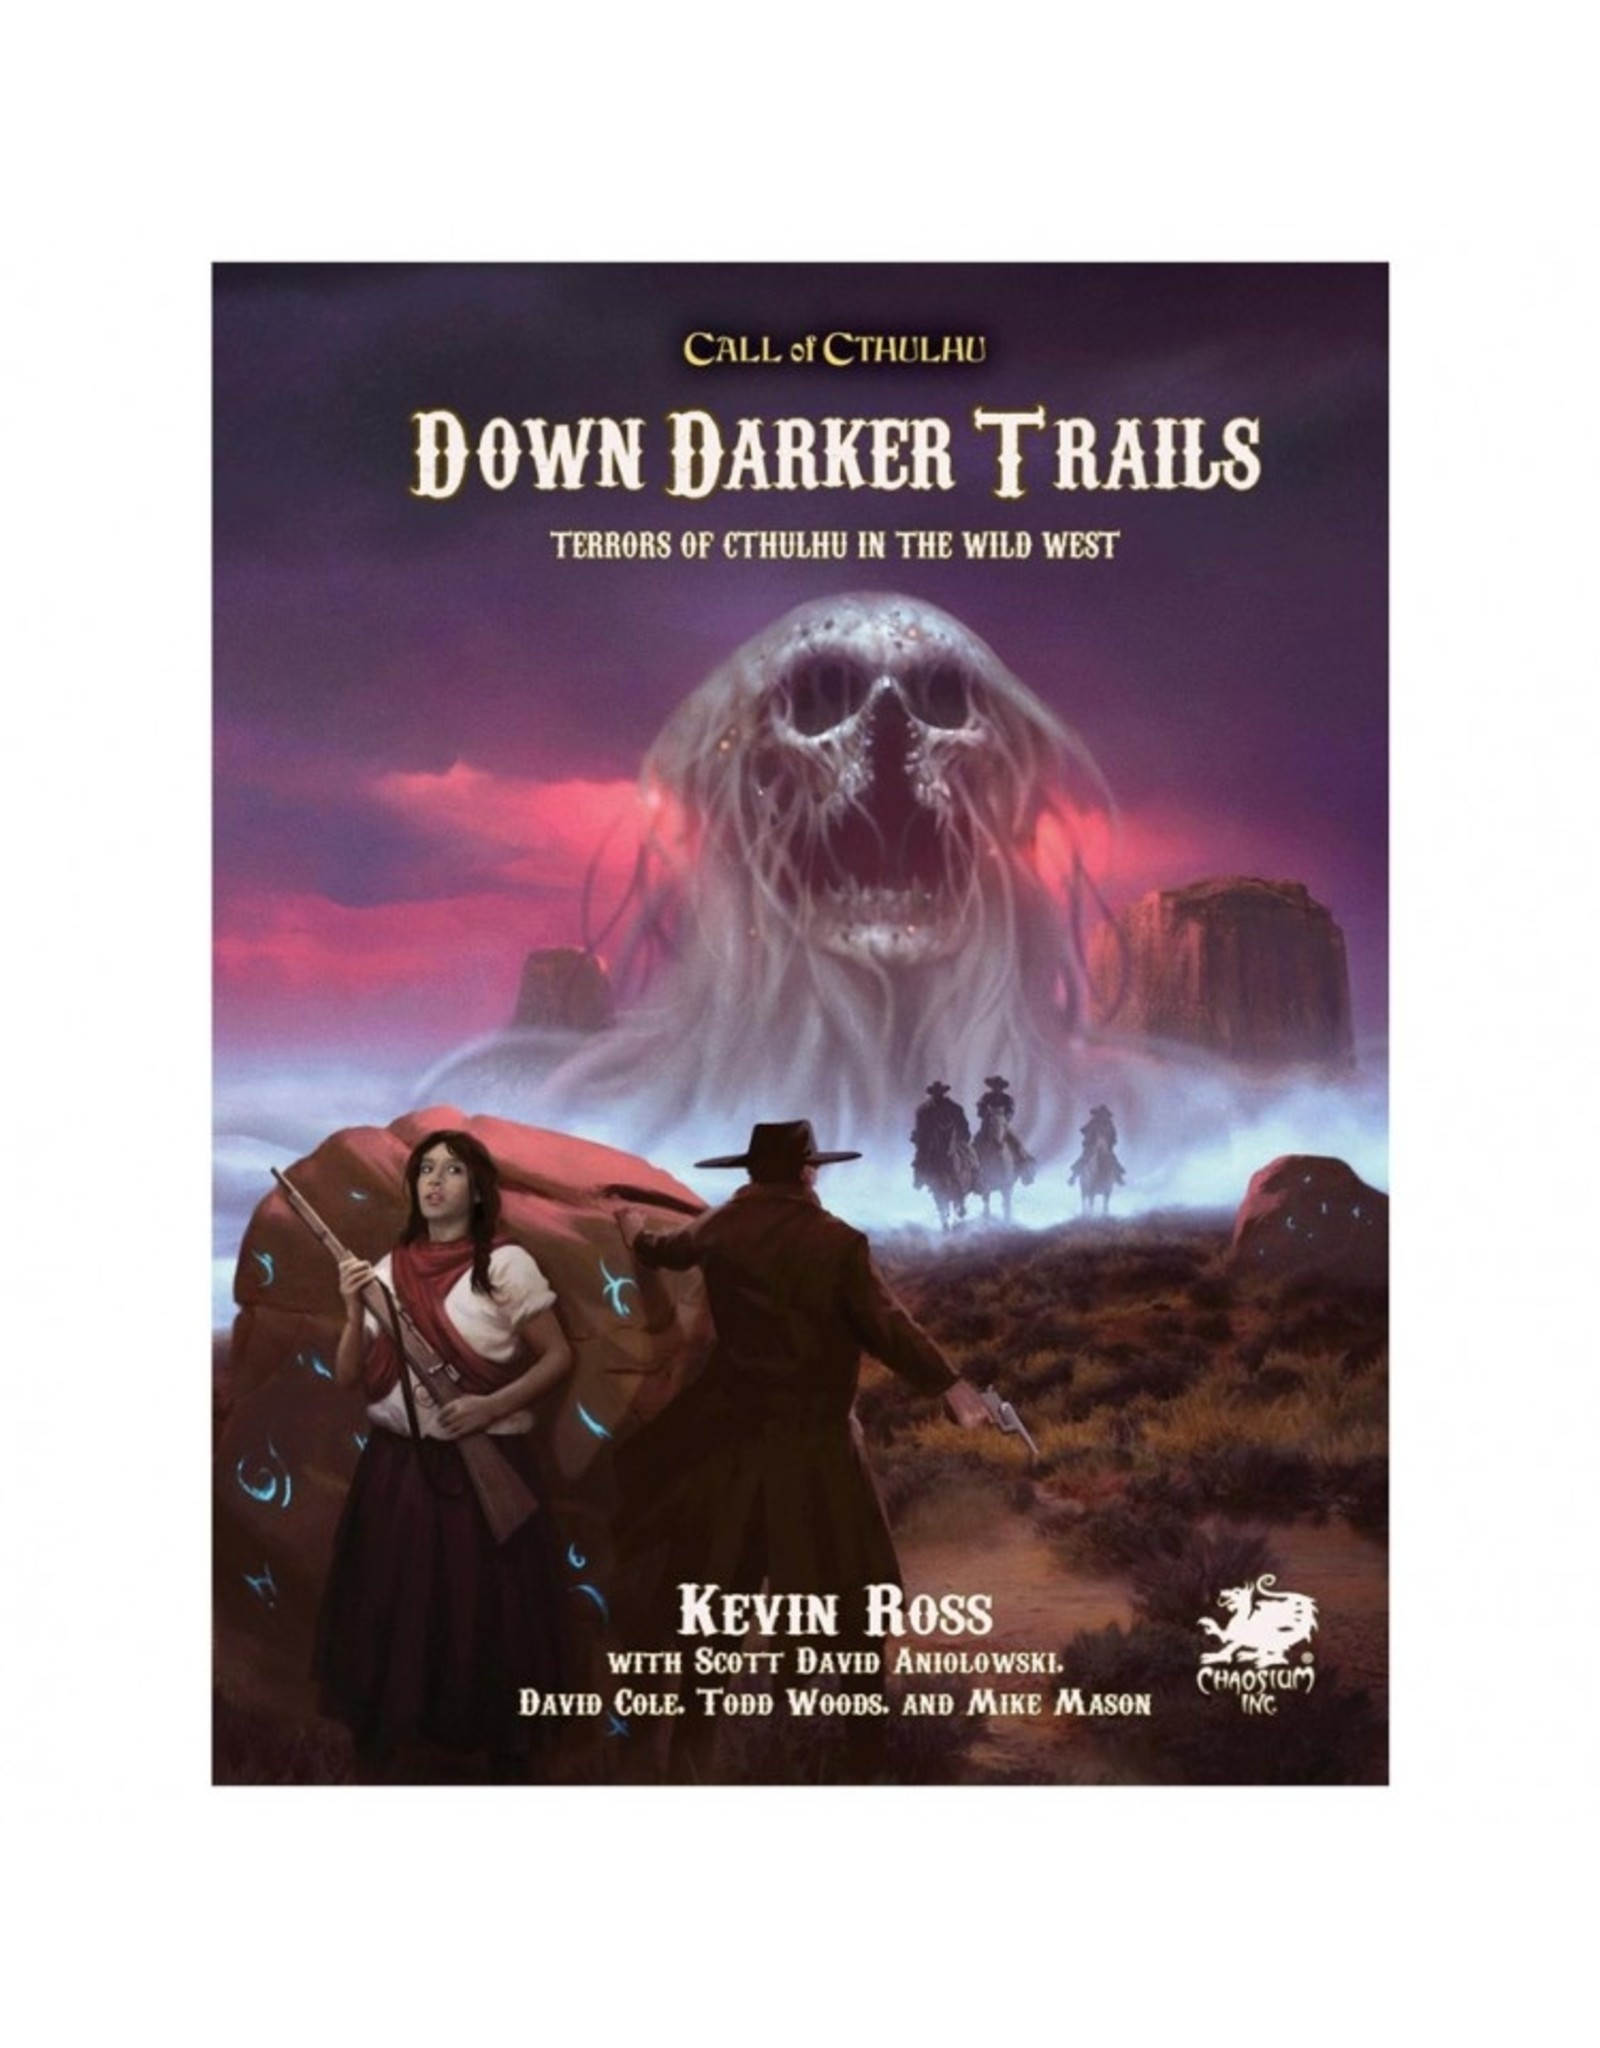 Chaosium Call of Cthulhu: 7E: Down Darker Trails - Terrors of Cthulhu in the Wild West